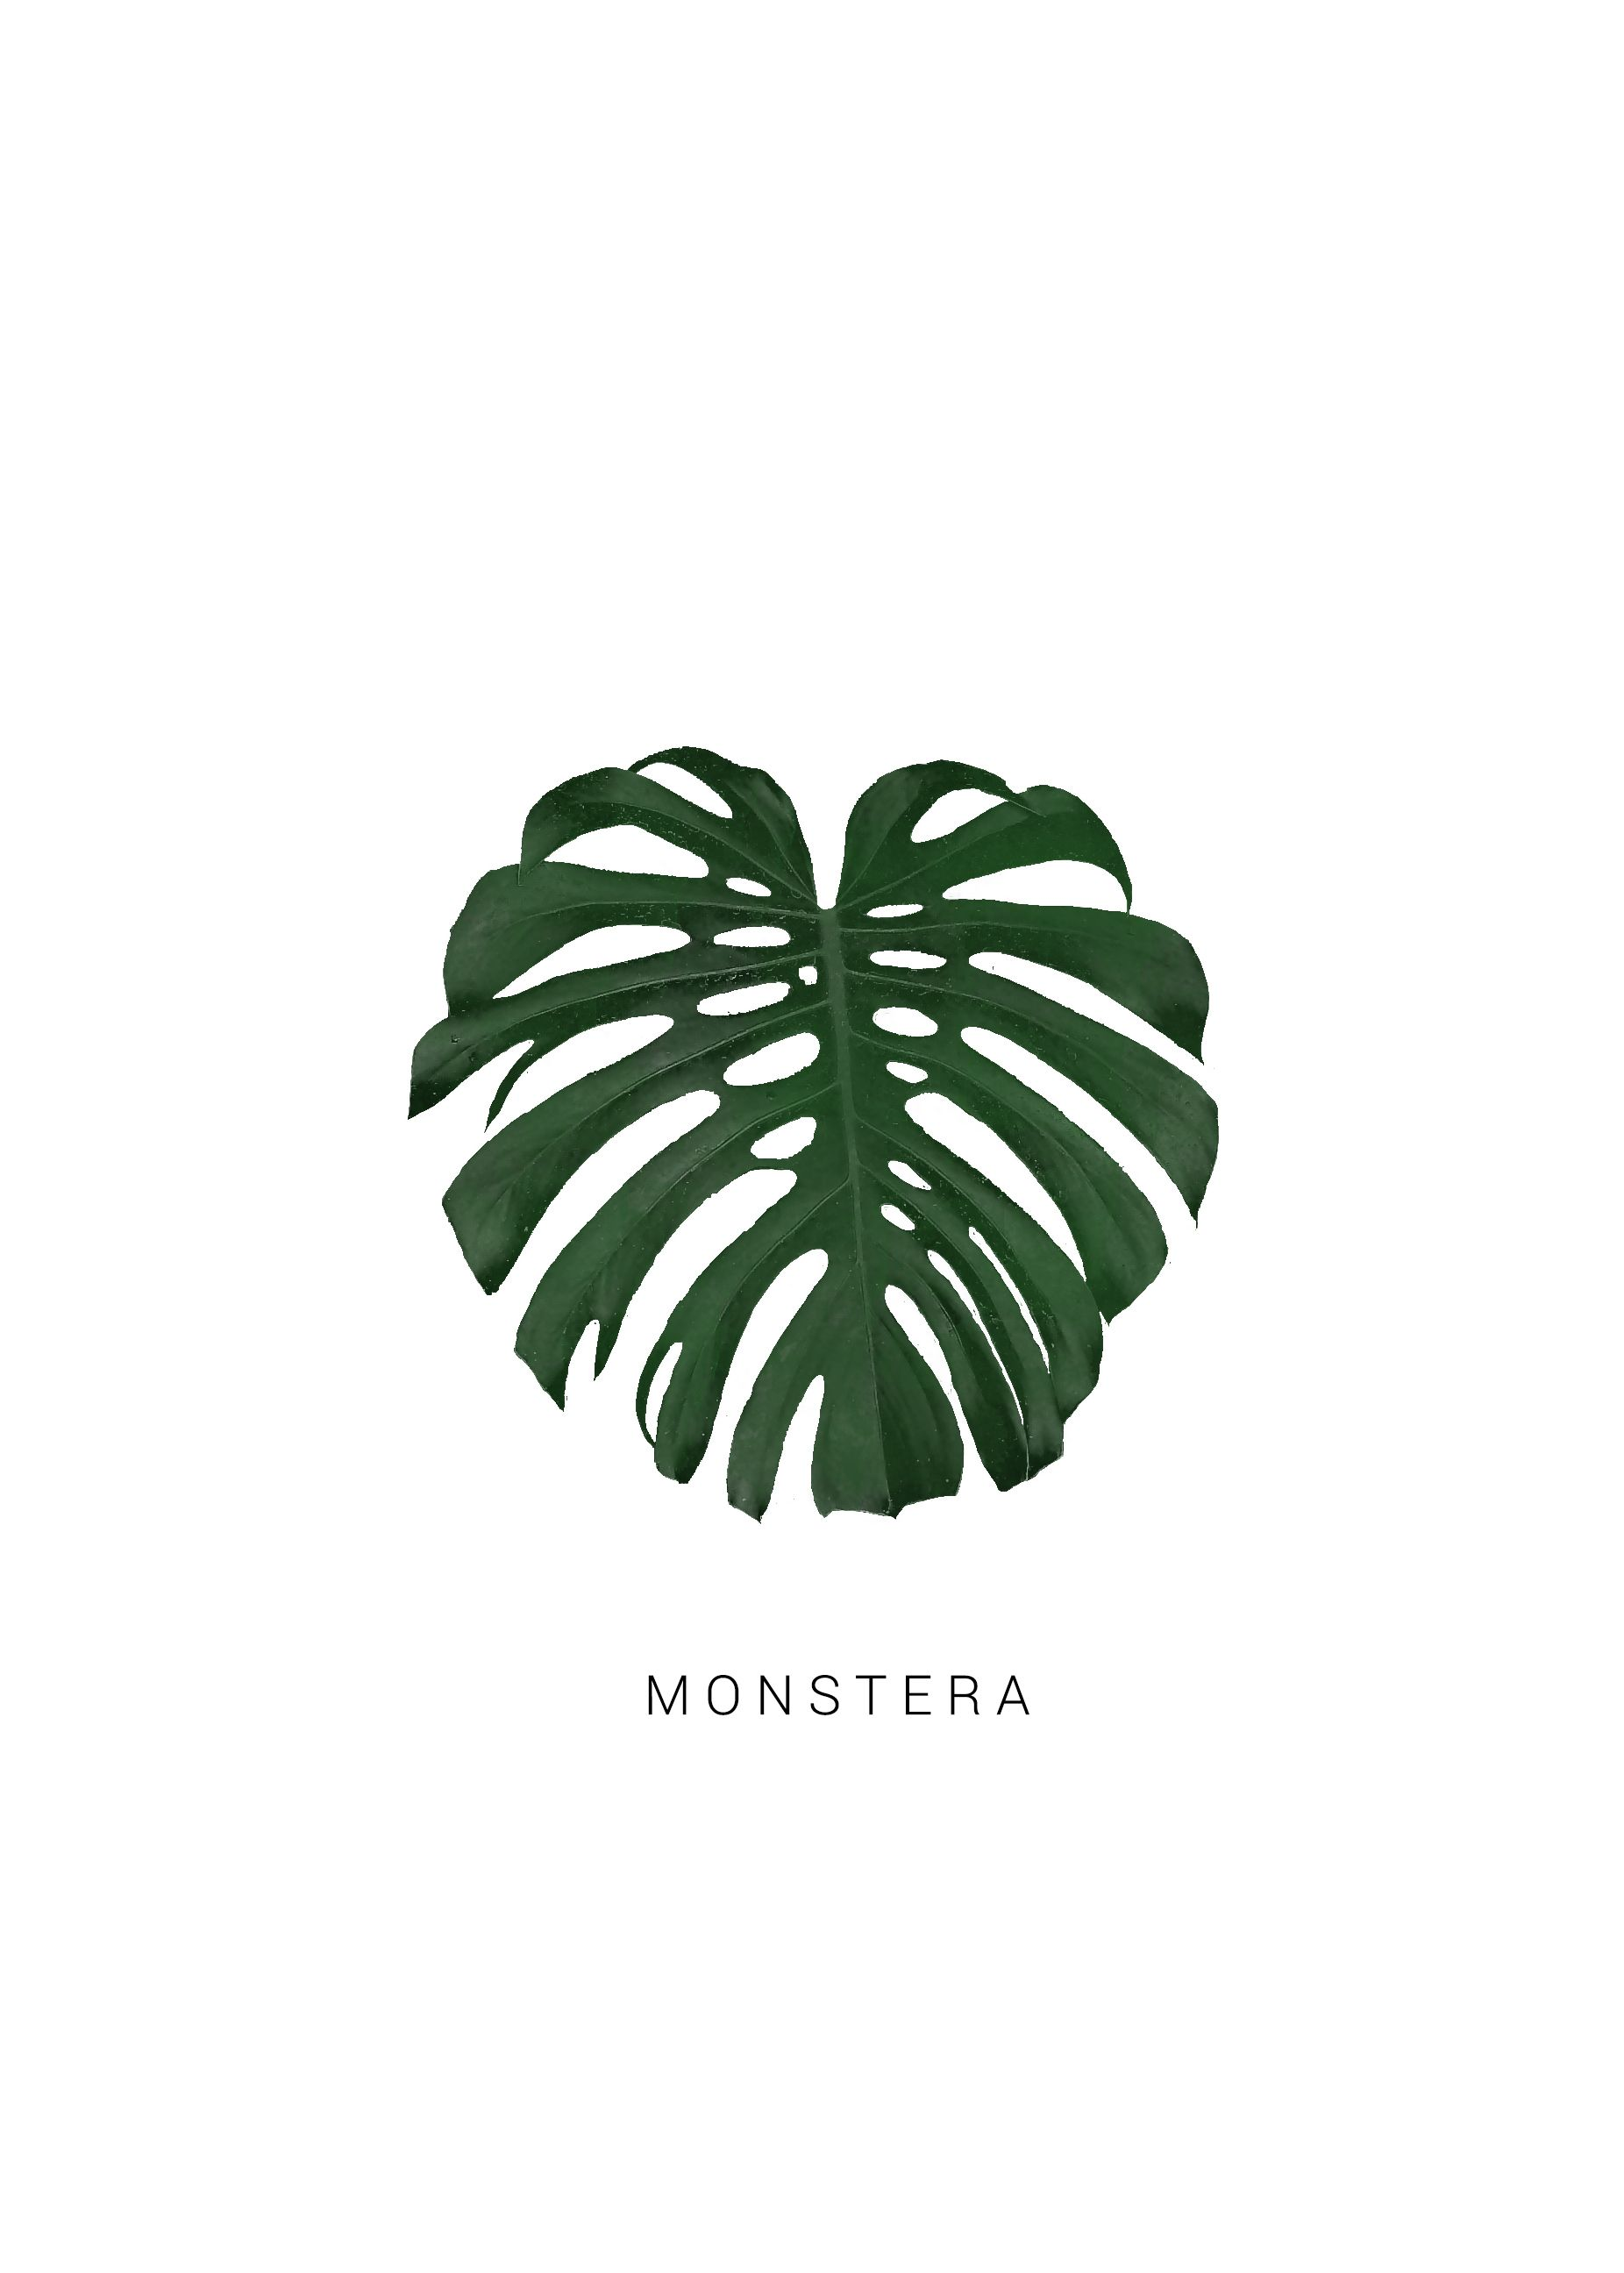 Monstera Plant Poster Greenery Print Printable Wall Art Download  Scandinavian Wall Art Simple Minimal Poster Scandinavian Print Tropical